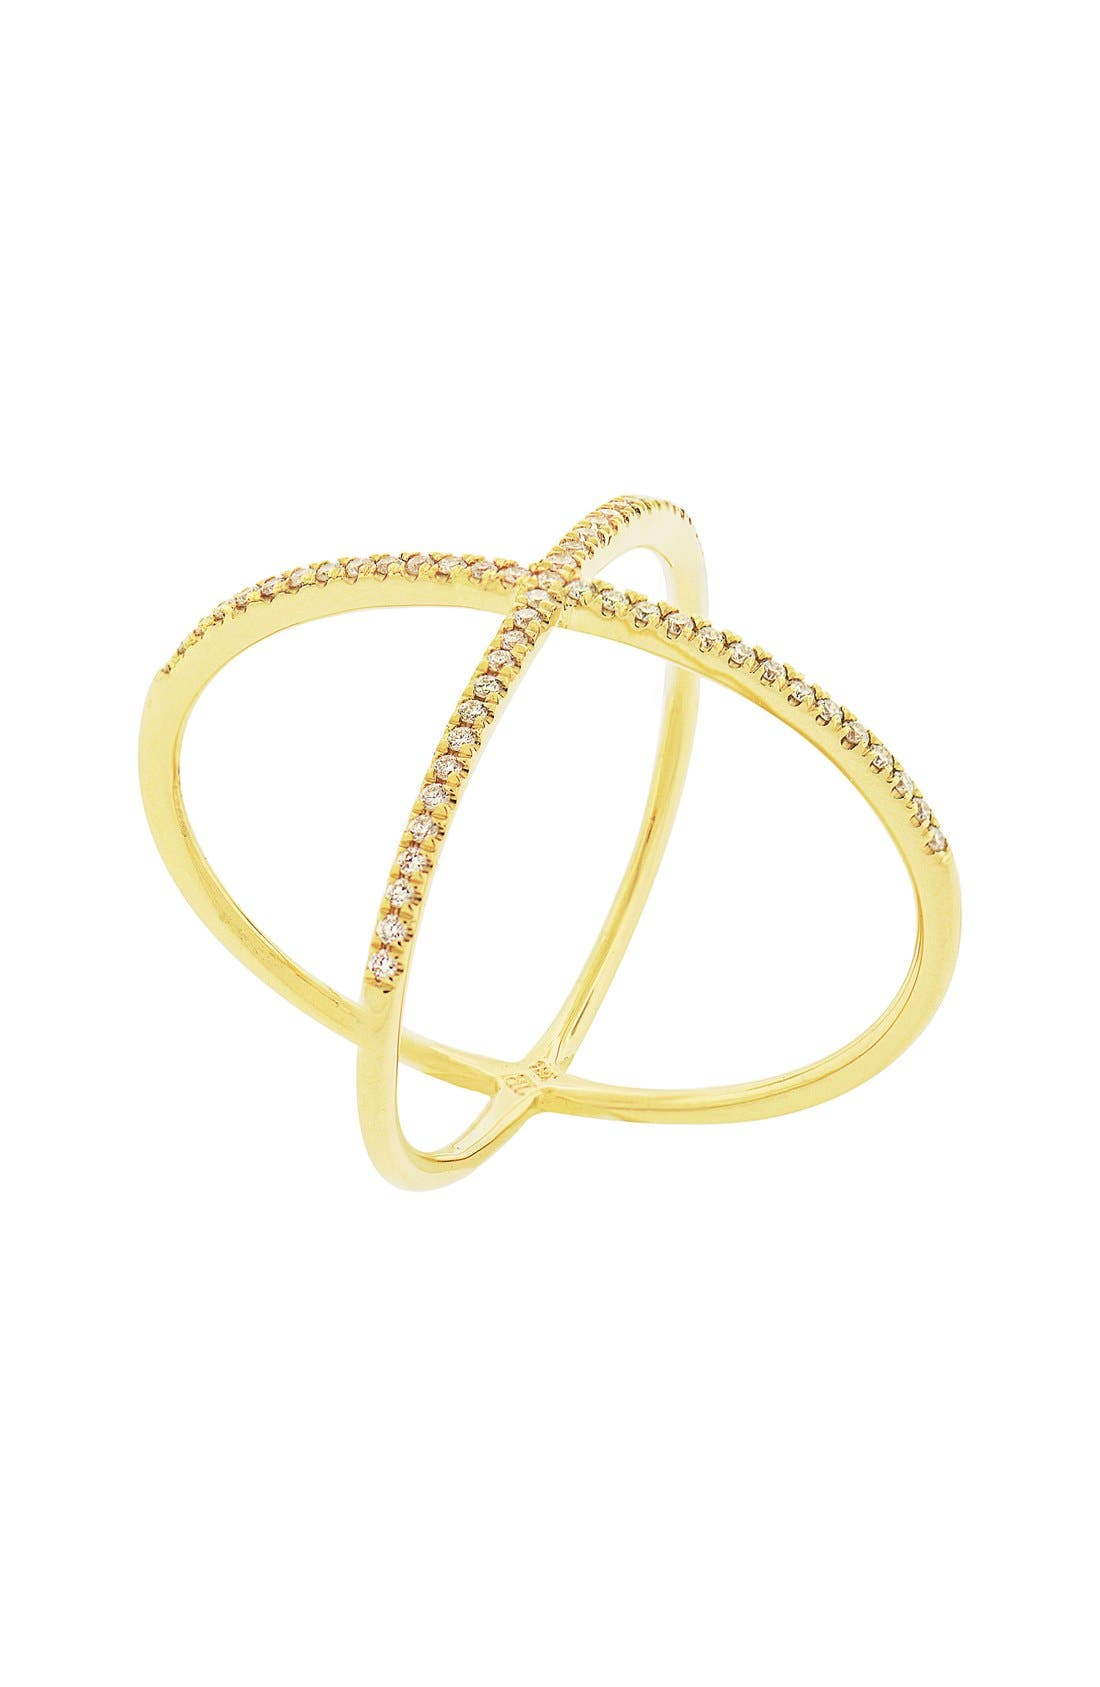 Crossover Diamond Ring,                         Main,                         color, Yellow Gold